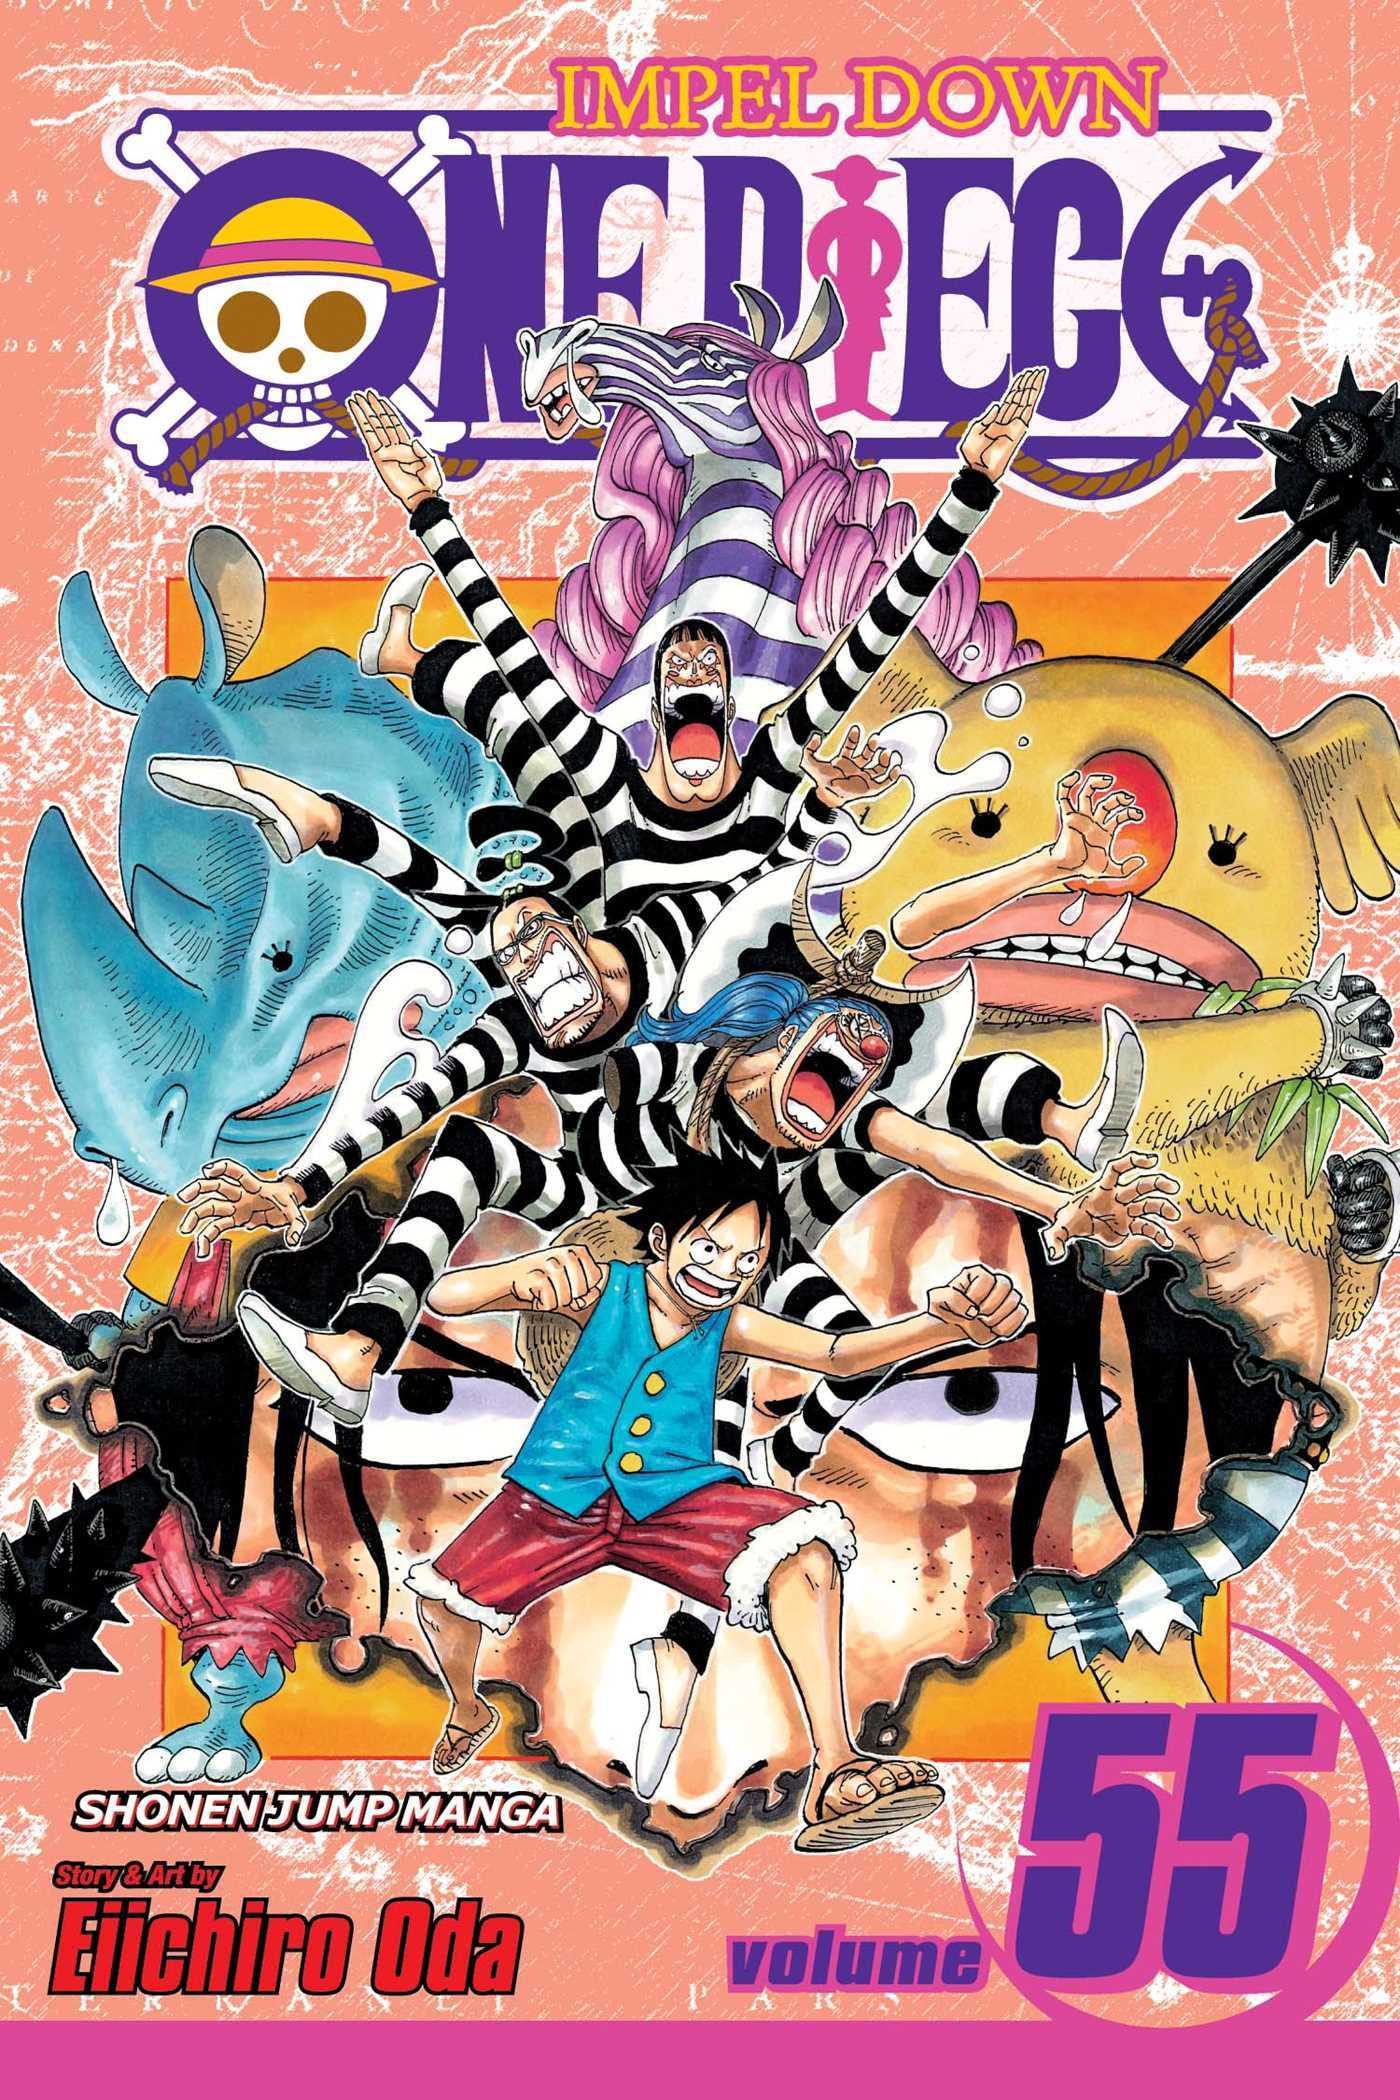 One-piece-vol-55-9781421534718_hr